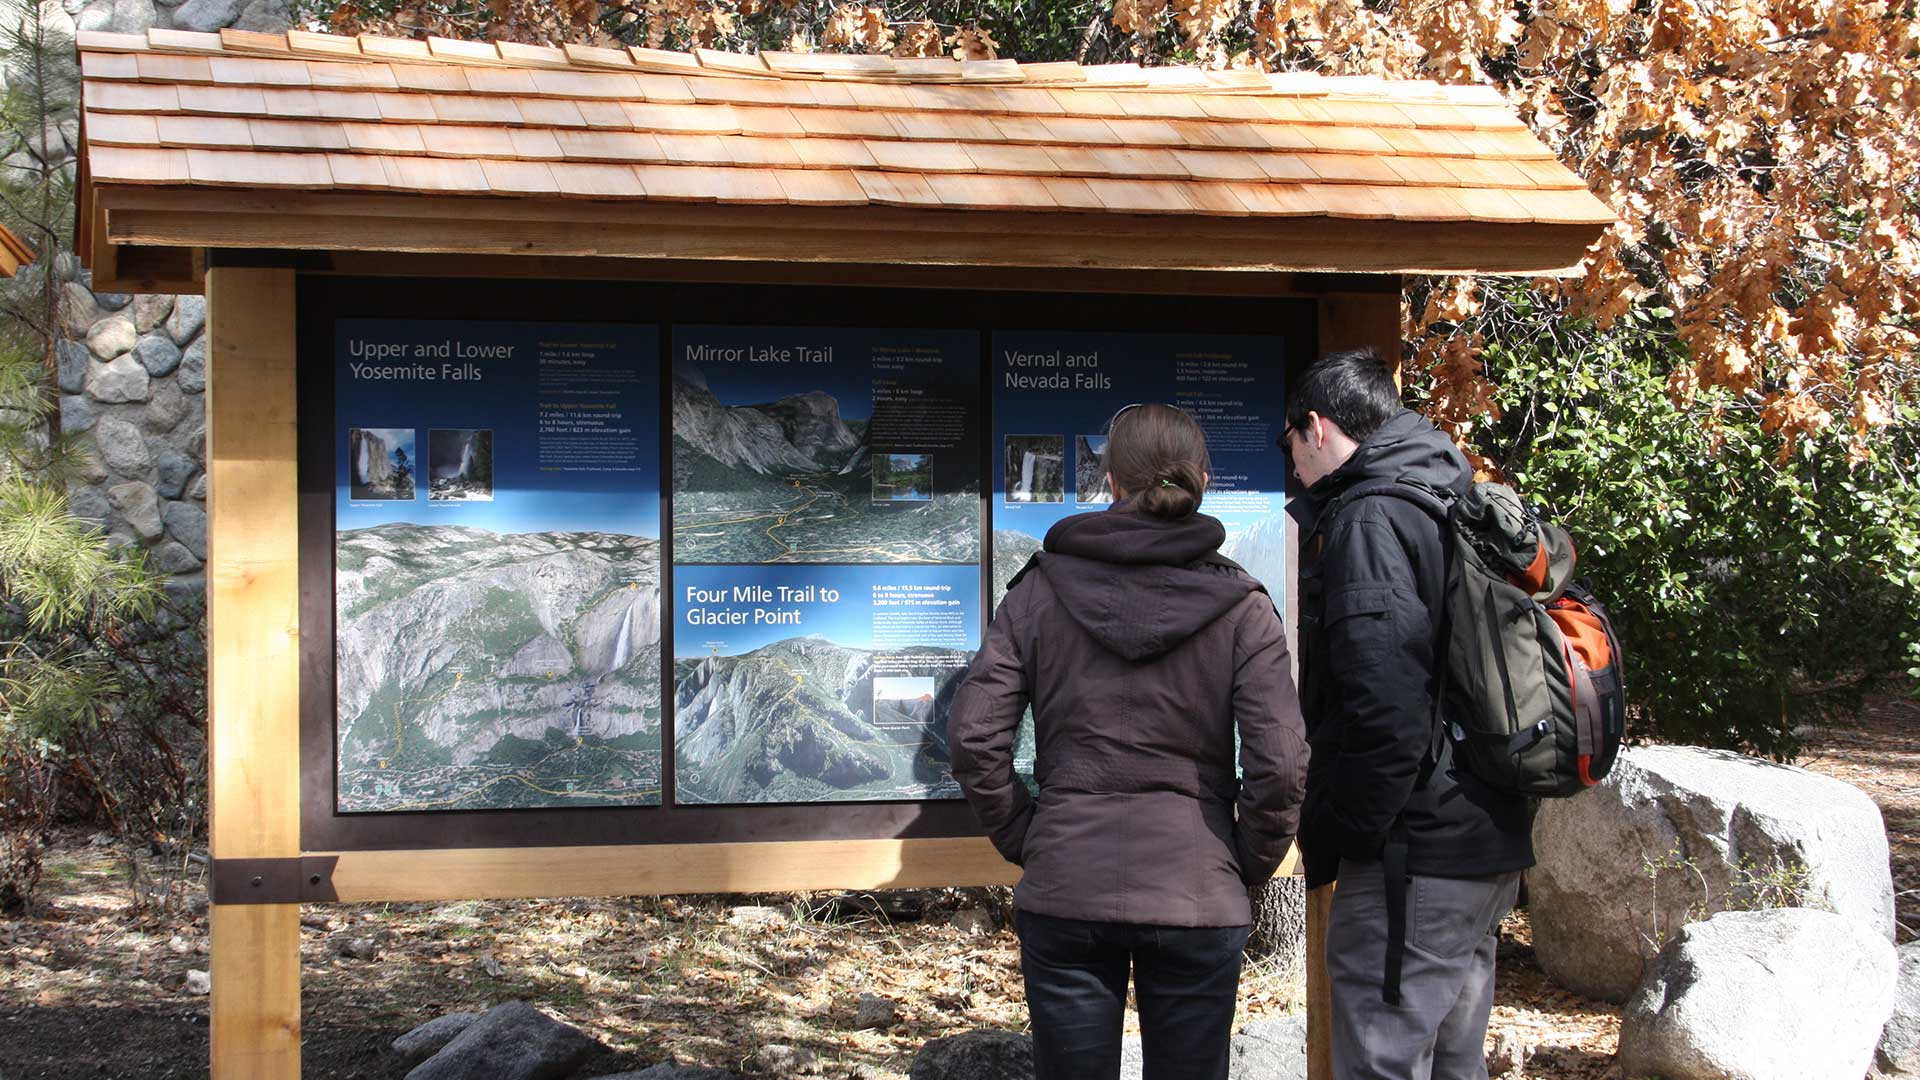 Interpretive signs on display in front of the Yosemite Valley Visitor Center